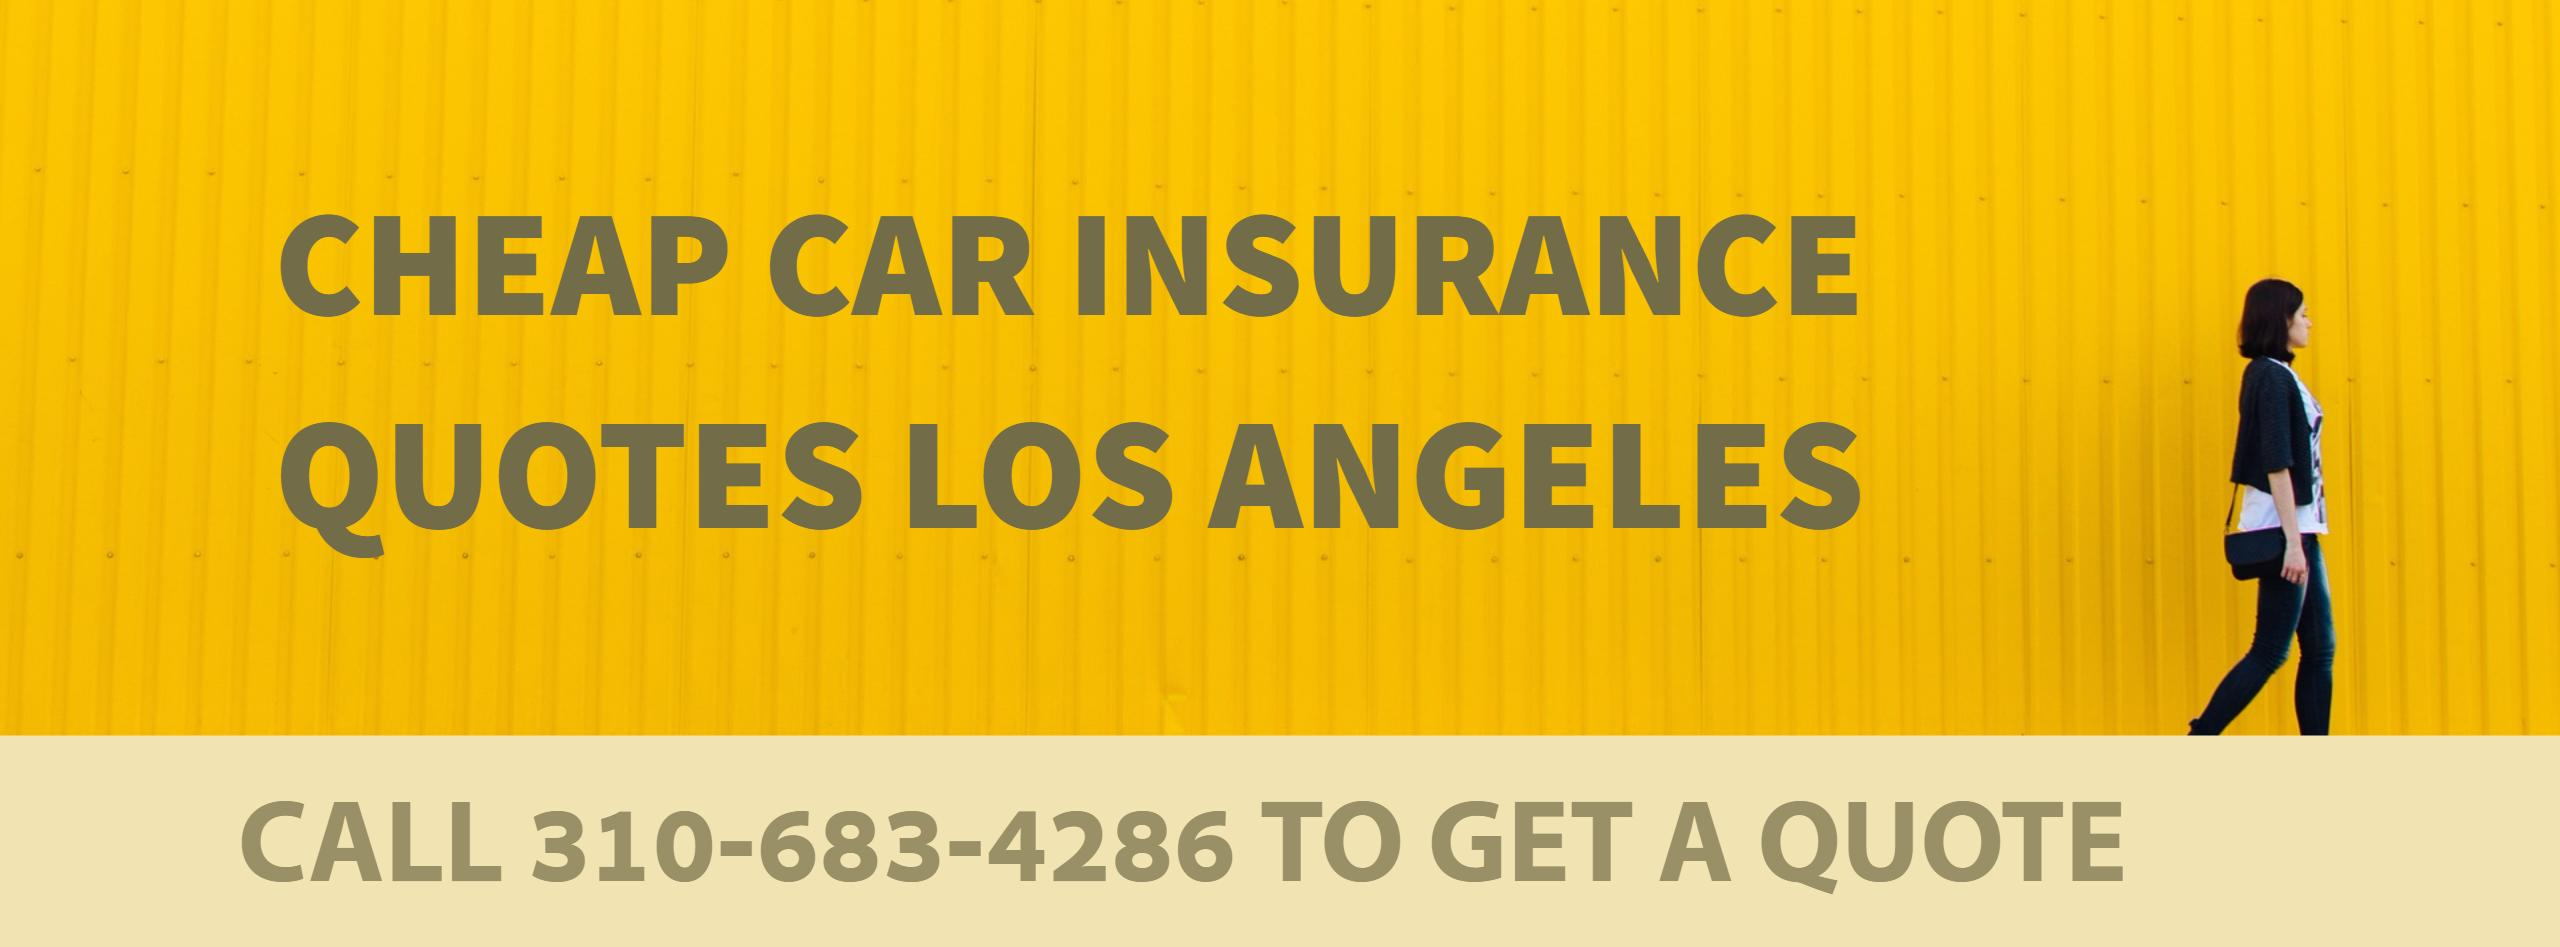 CHEAP CAR INSURANCE QUOTES LOS ANGELES CA